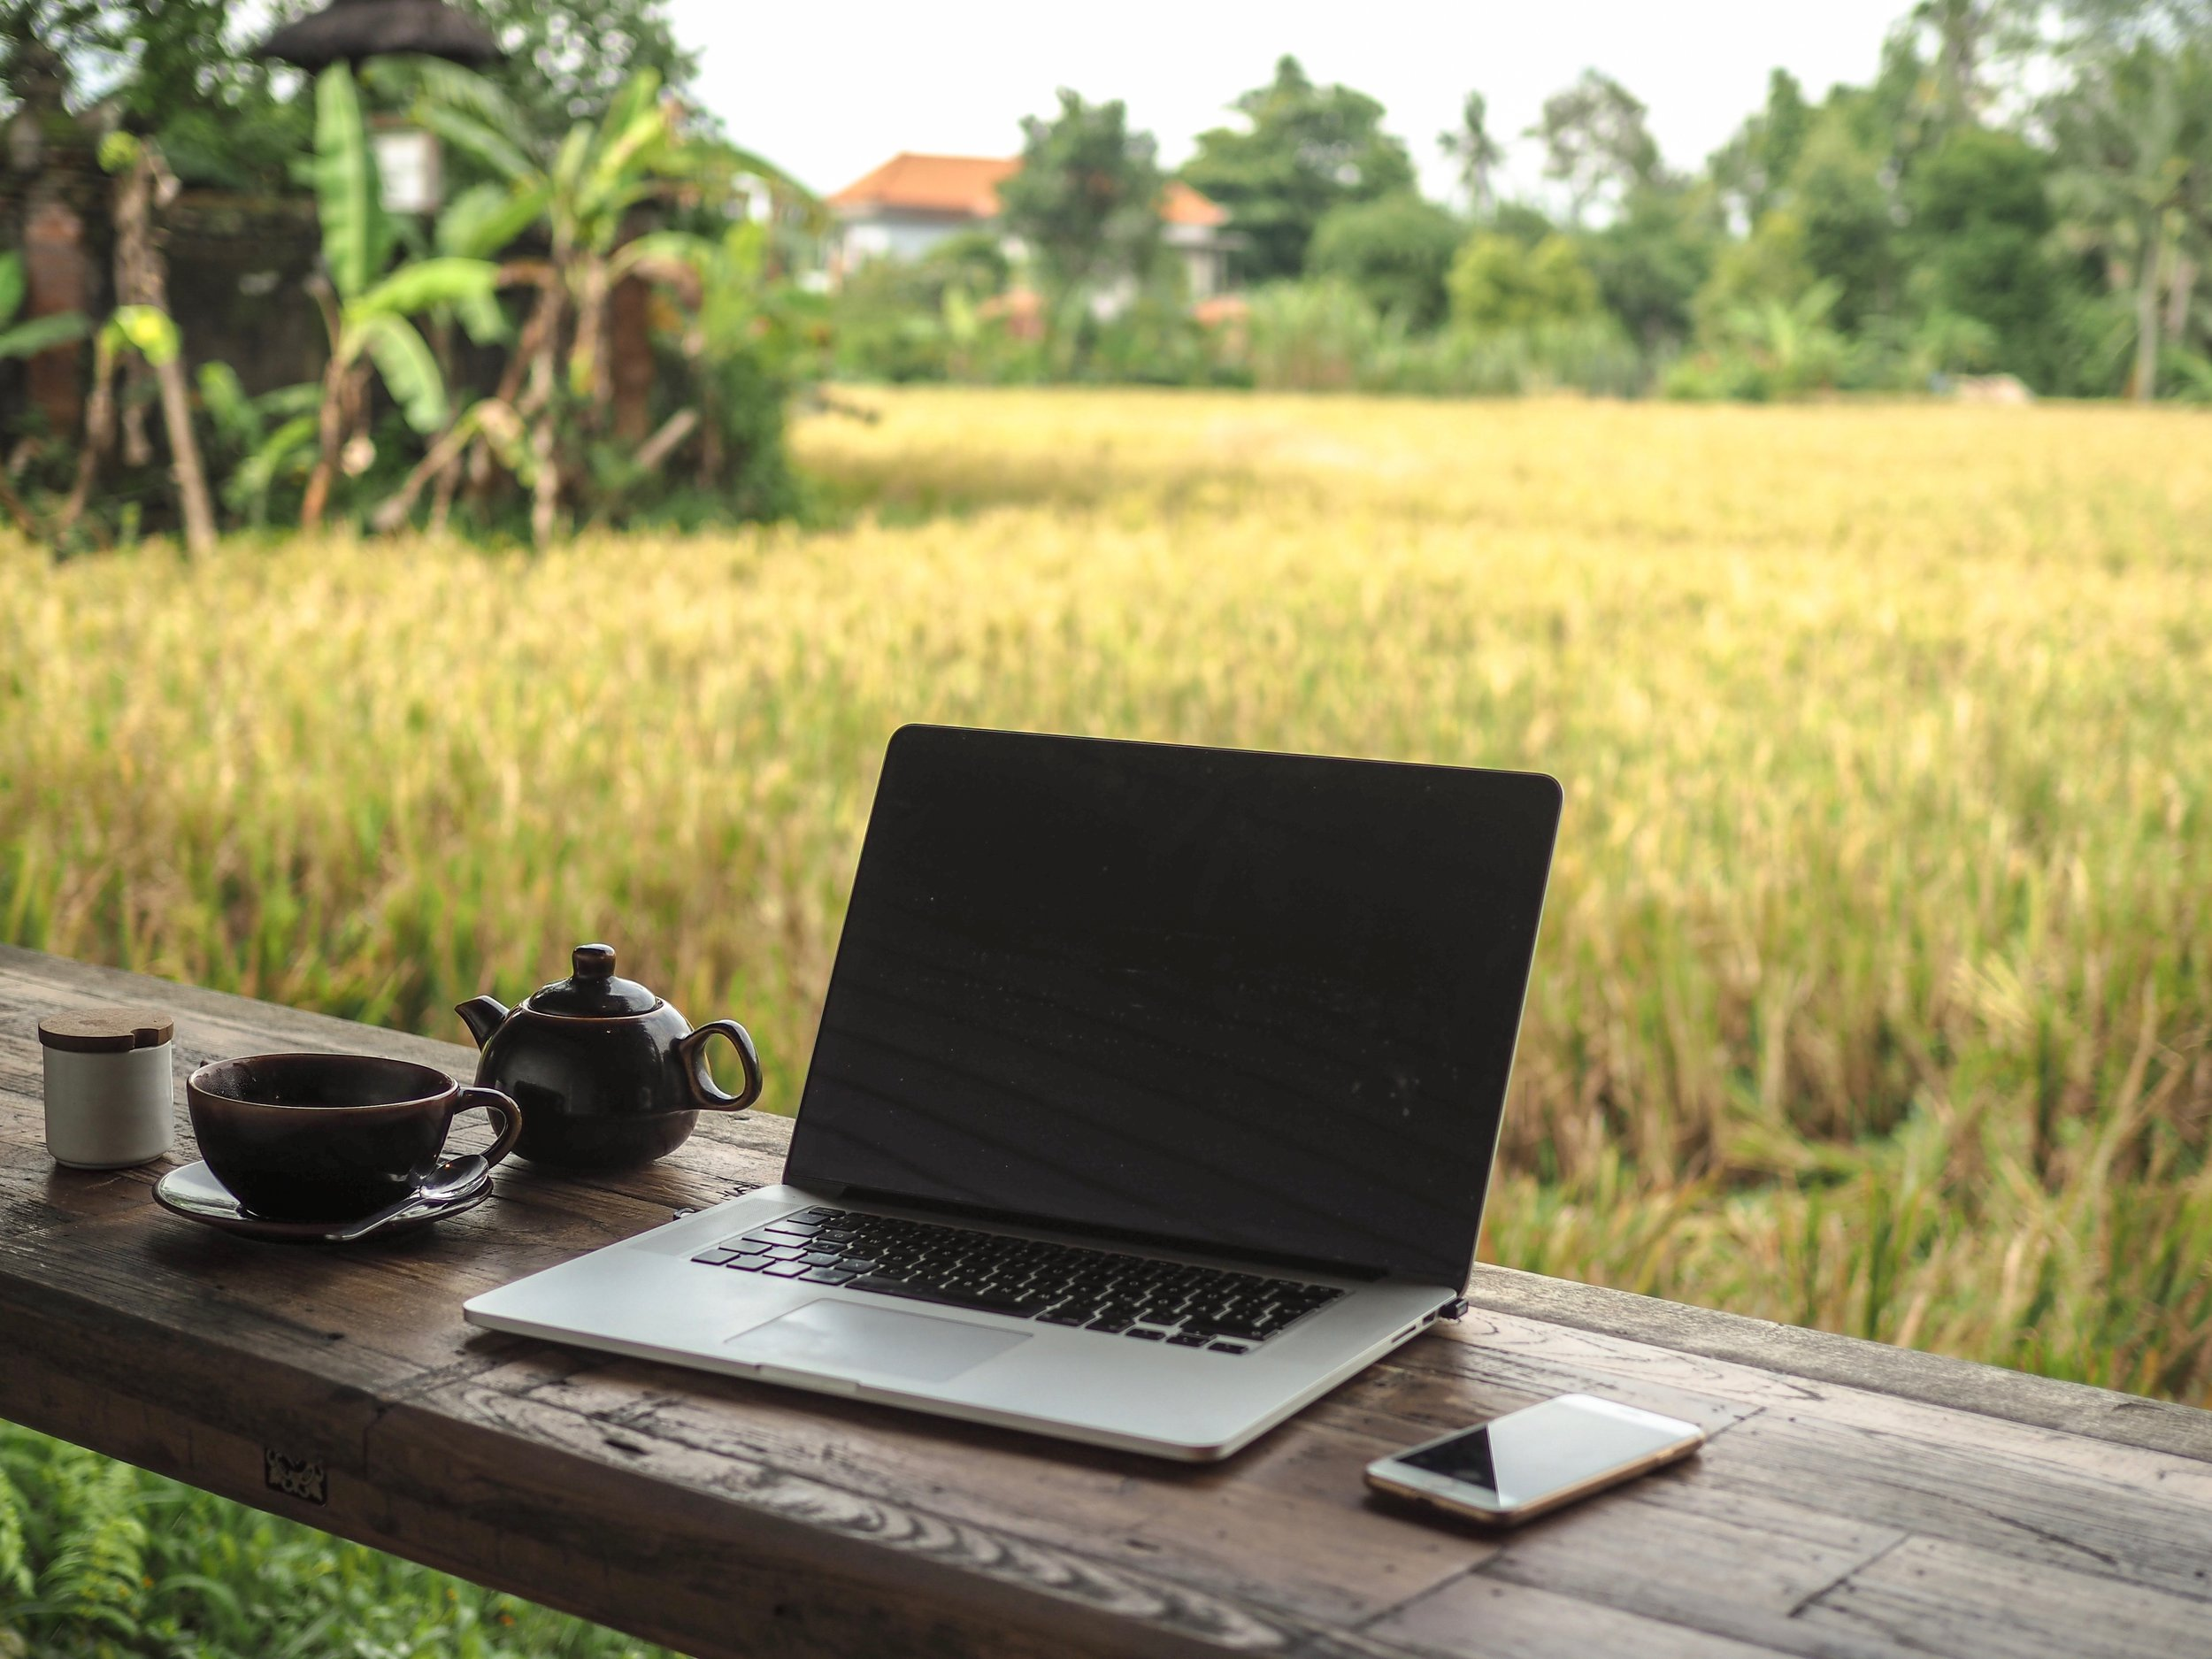 Internet access is essential to provide economic opportunity to rural areas. (Shutterstock)